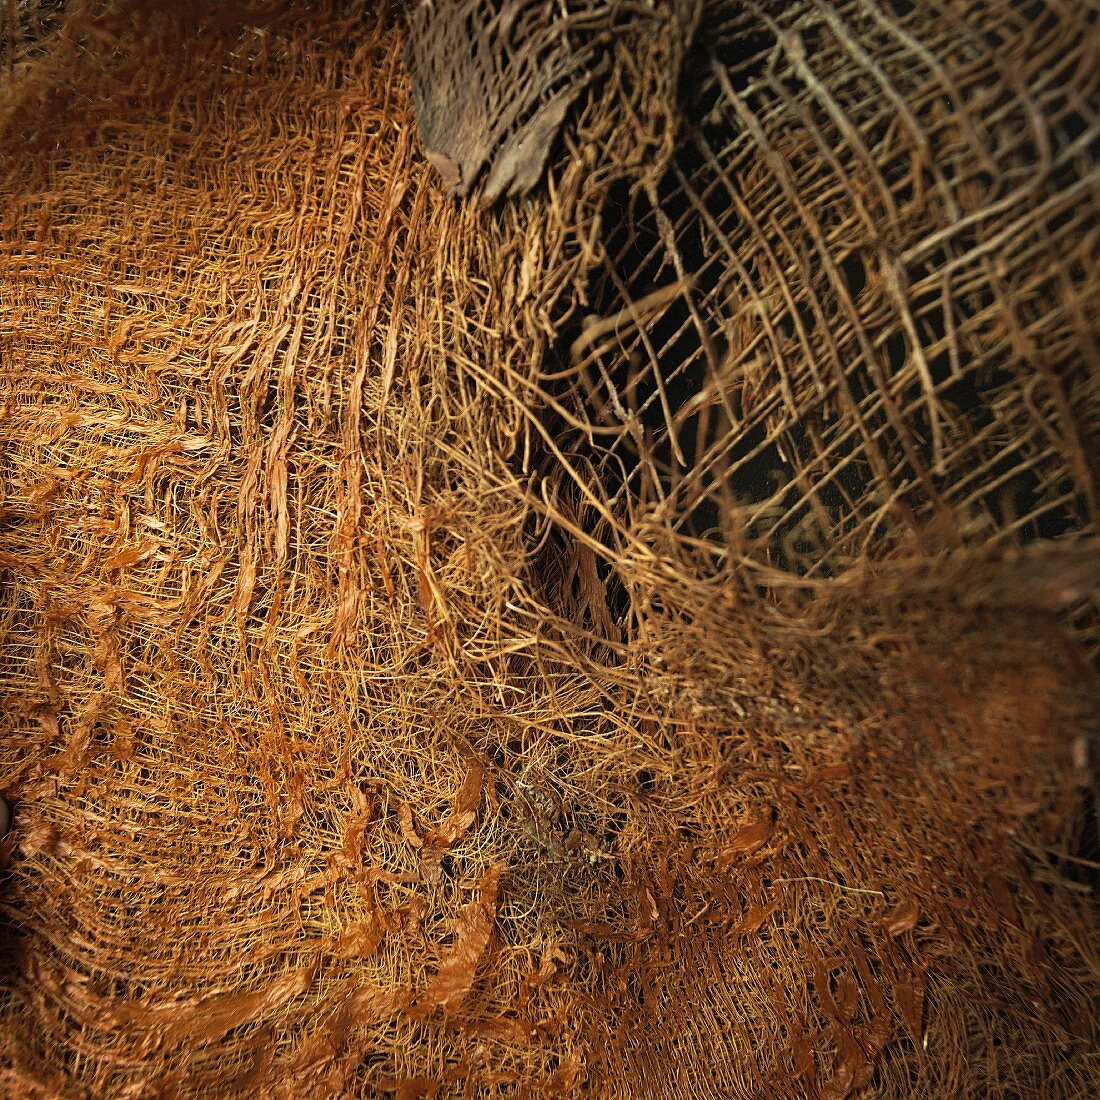 Brown woven material